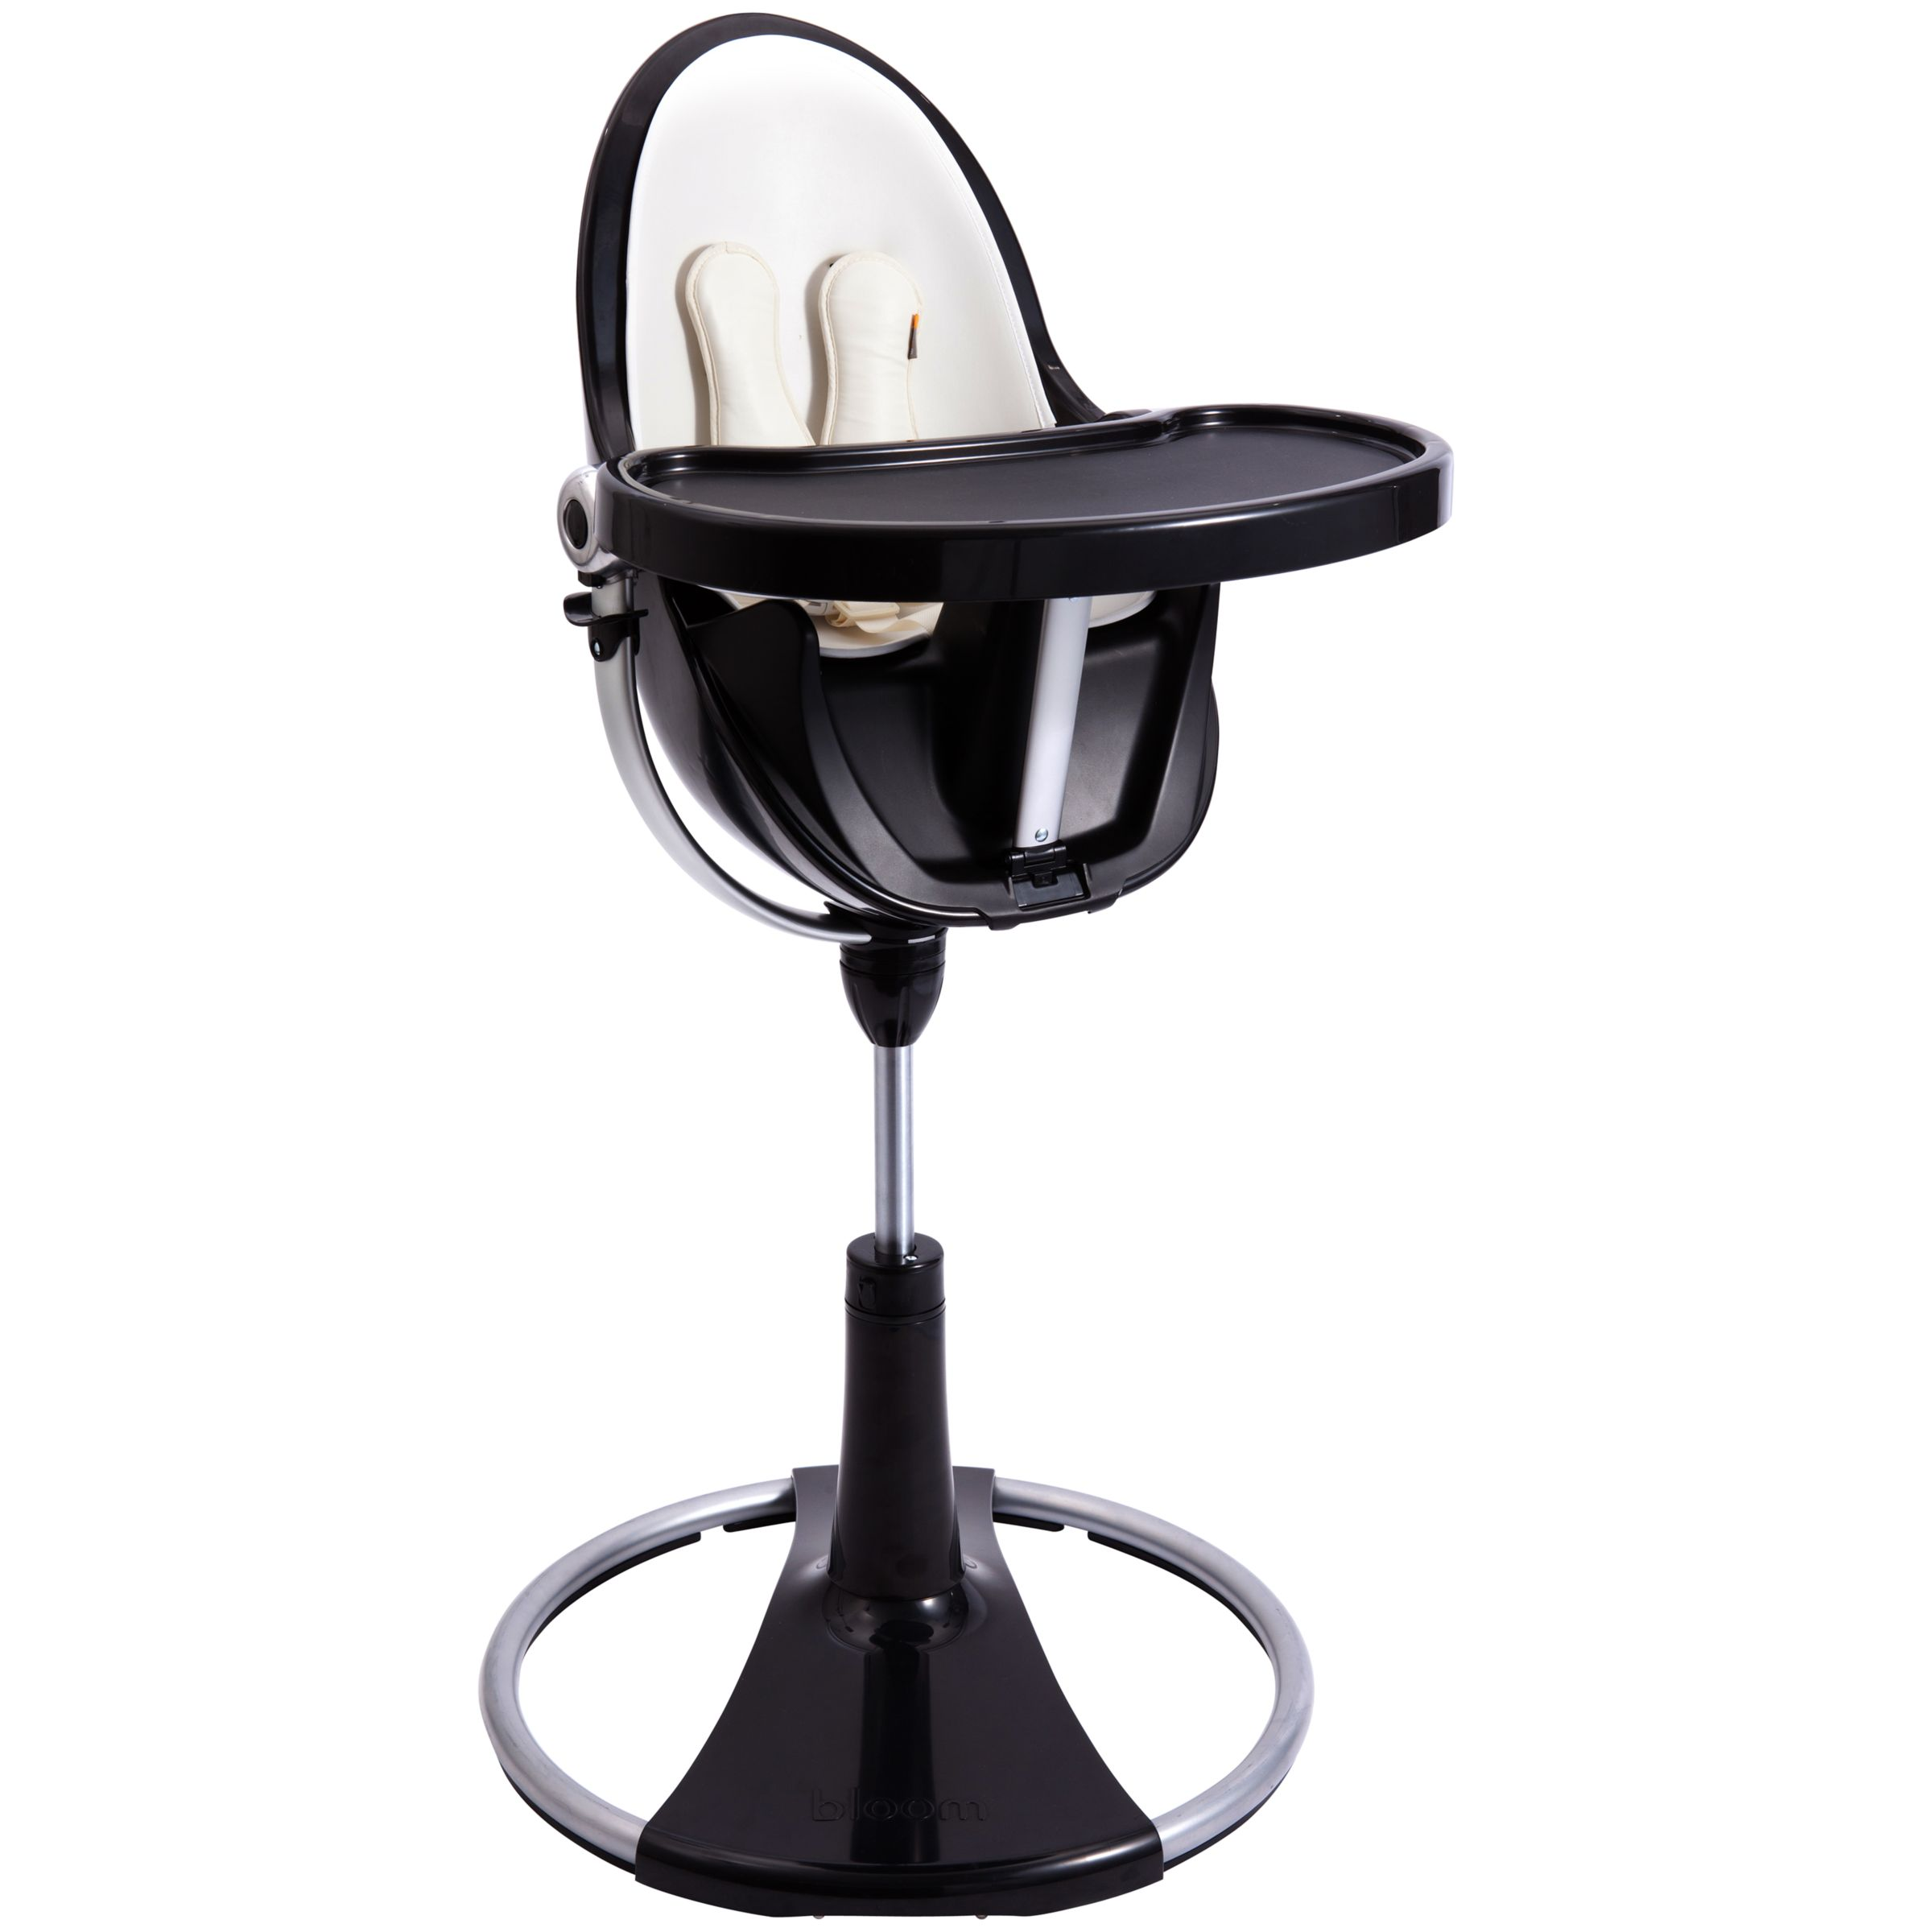 bloom Fresco Chrome Contemporary Leatherette Baby Chair, Black, Coconut White